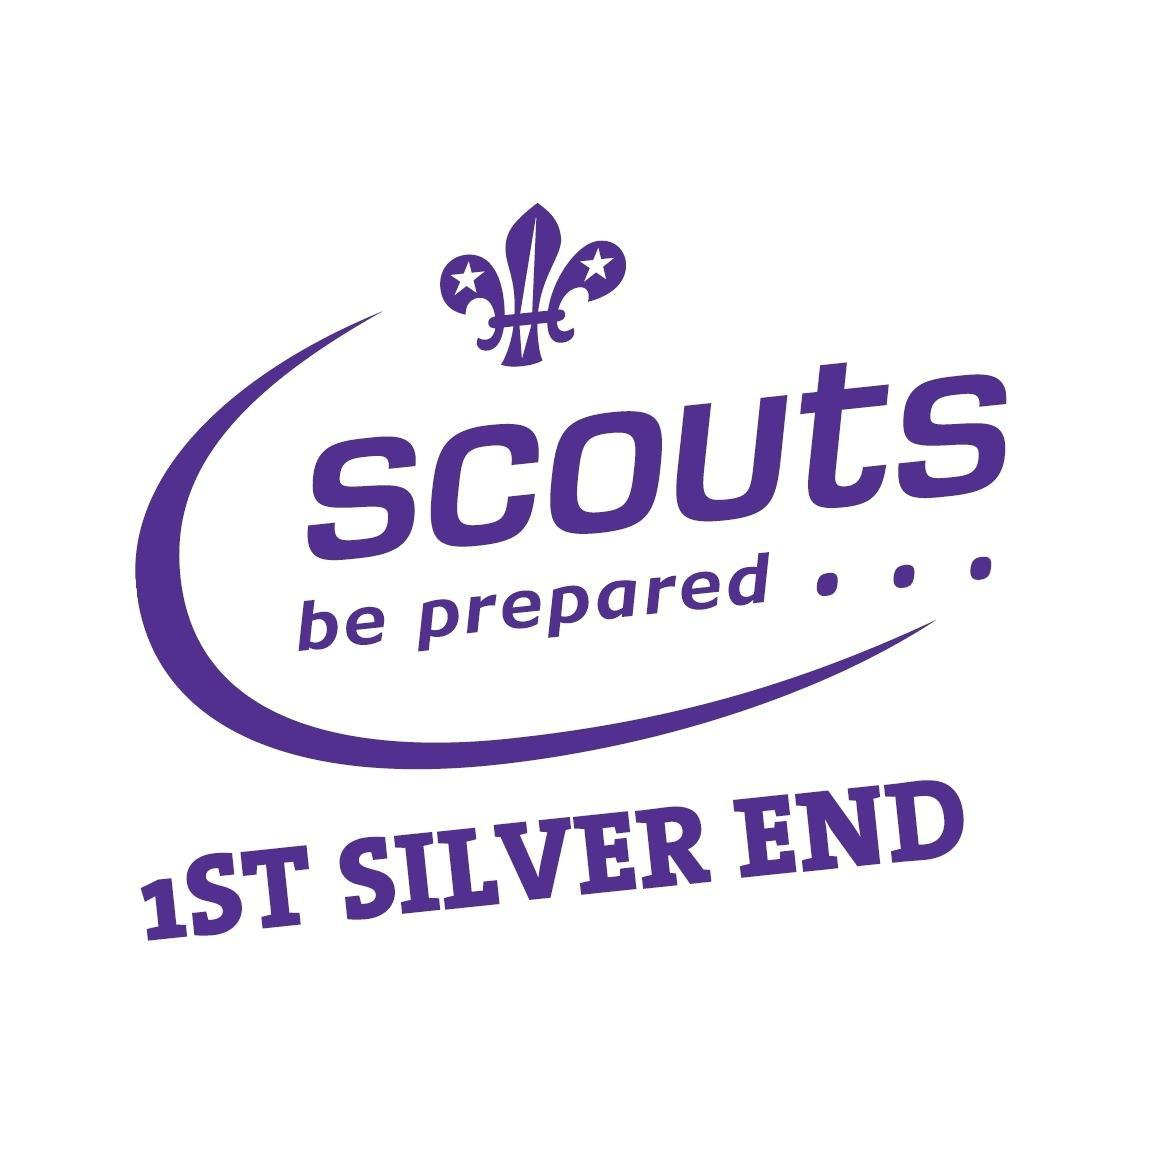 Our Show: 1st Silverend Scouts